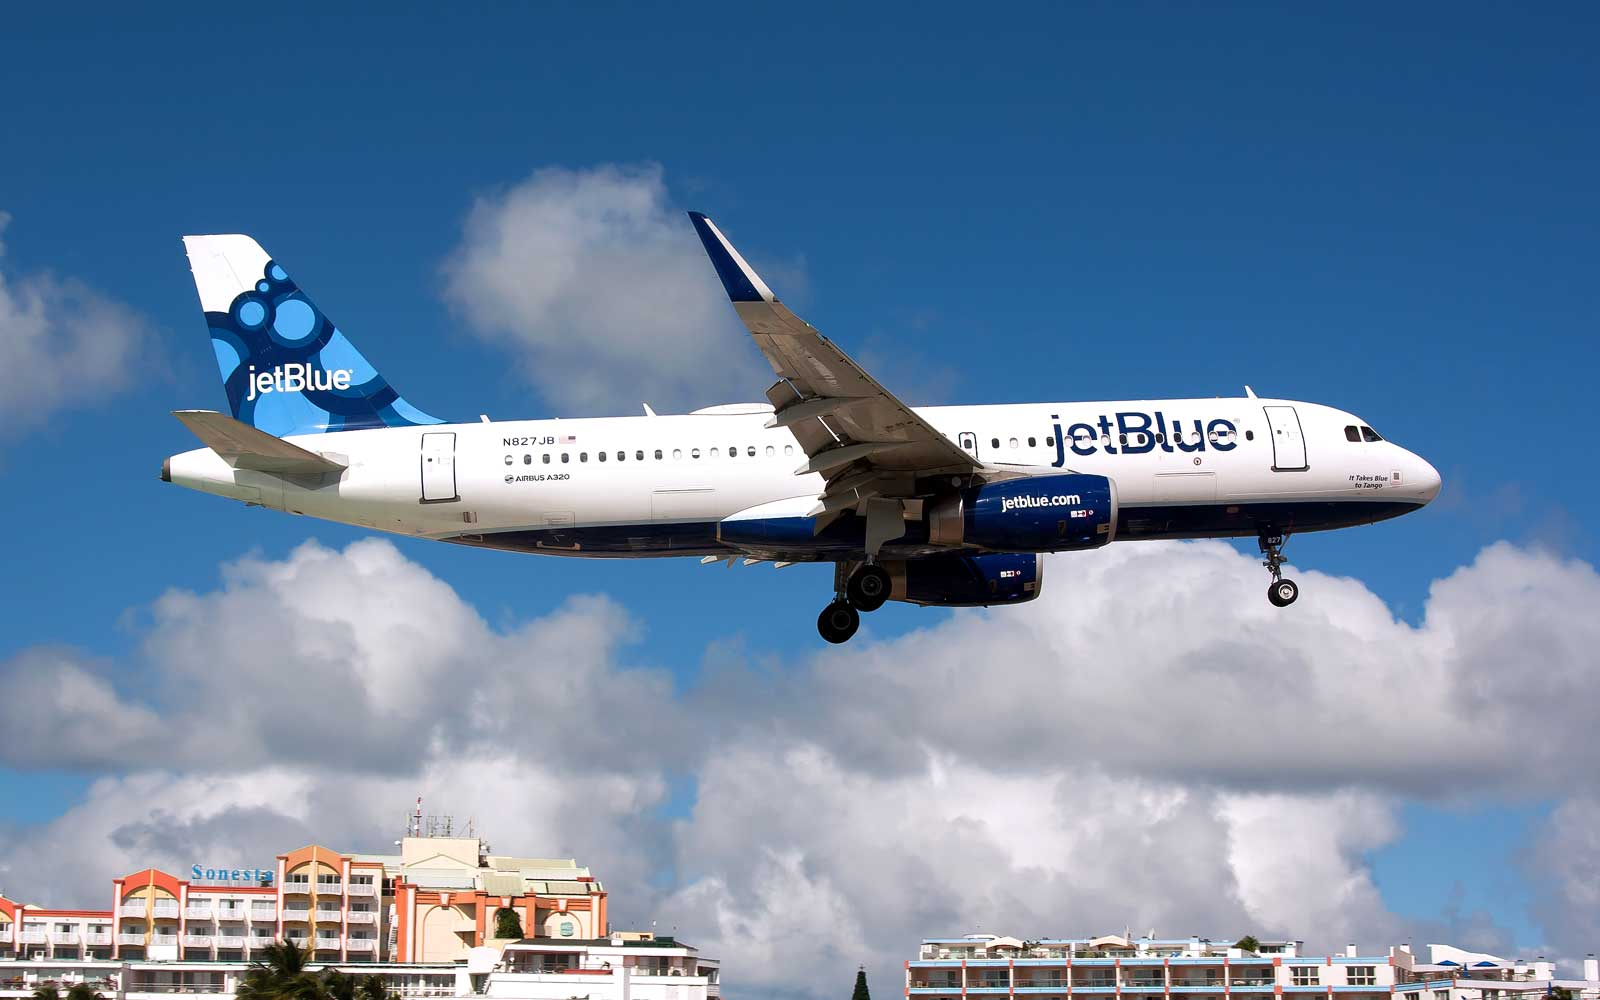 JetBlue Airplane Flying In Sky